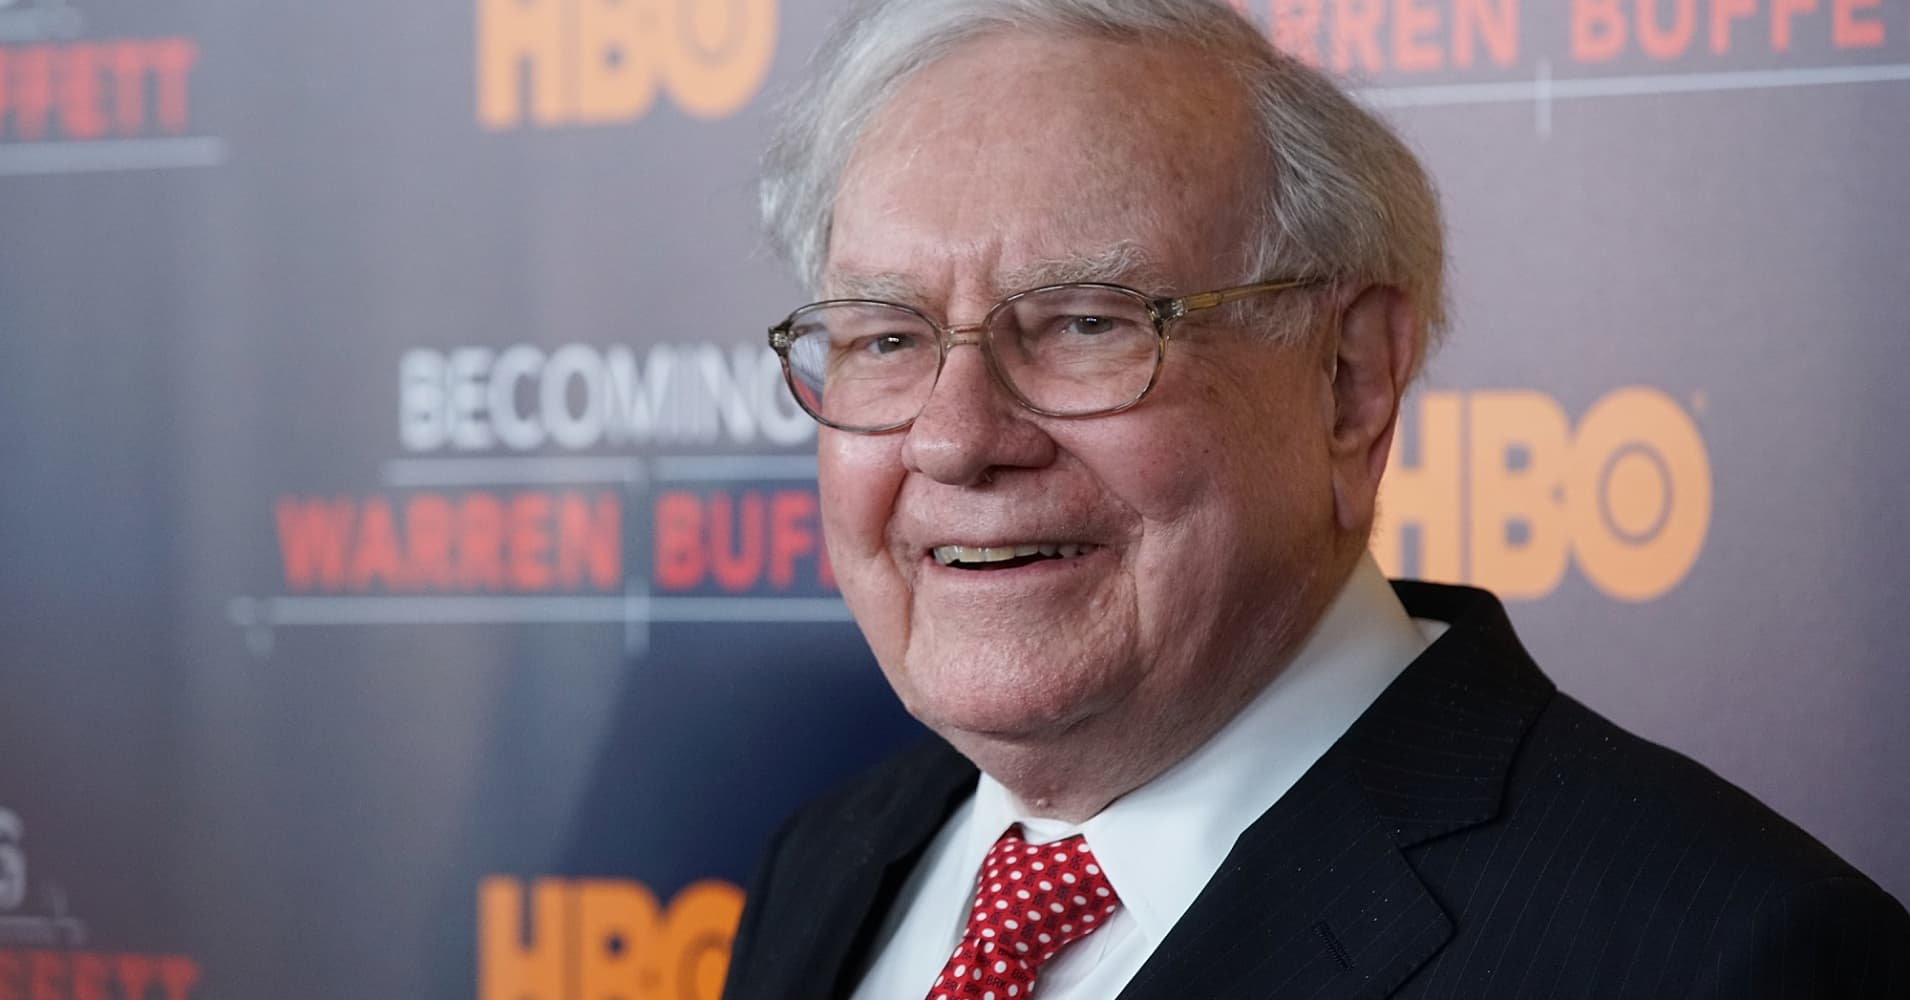 Manage your money like the super-wealthy — 3 habits to steal from Warren Buffett, Mark Cuban and Kevin O'Leary